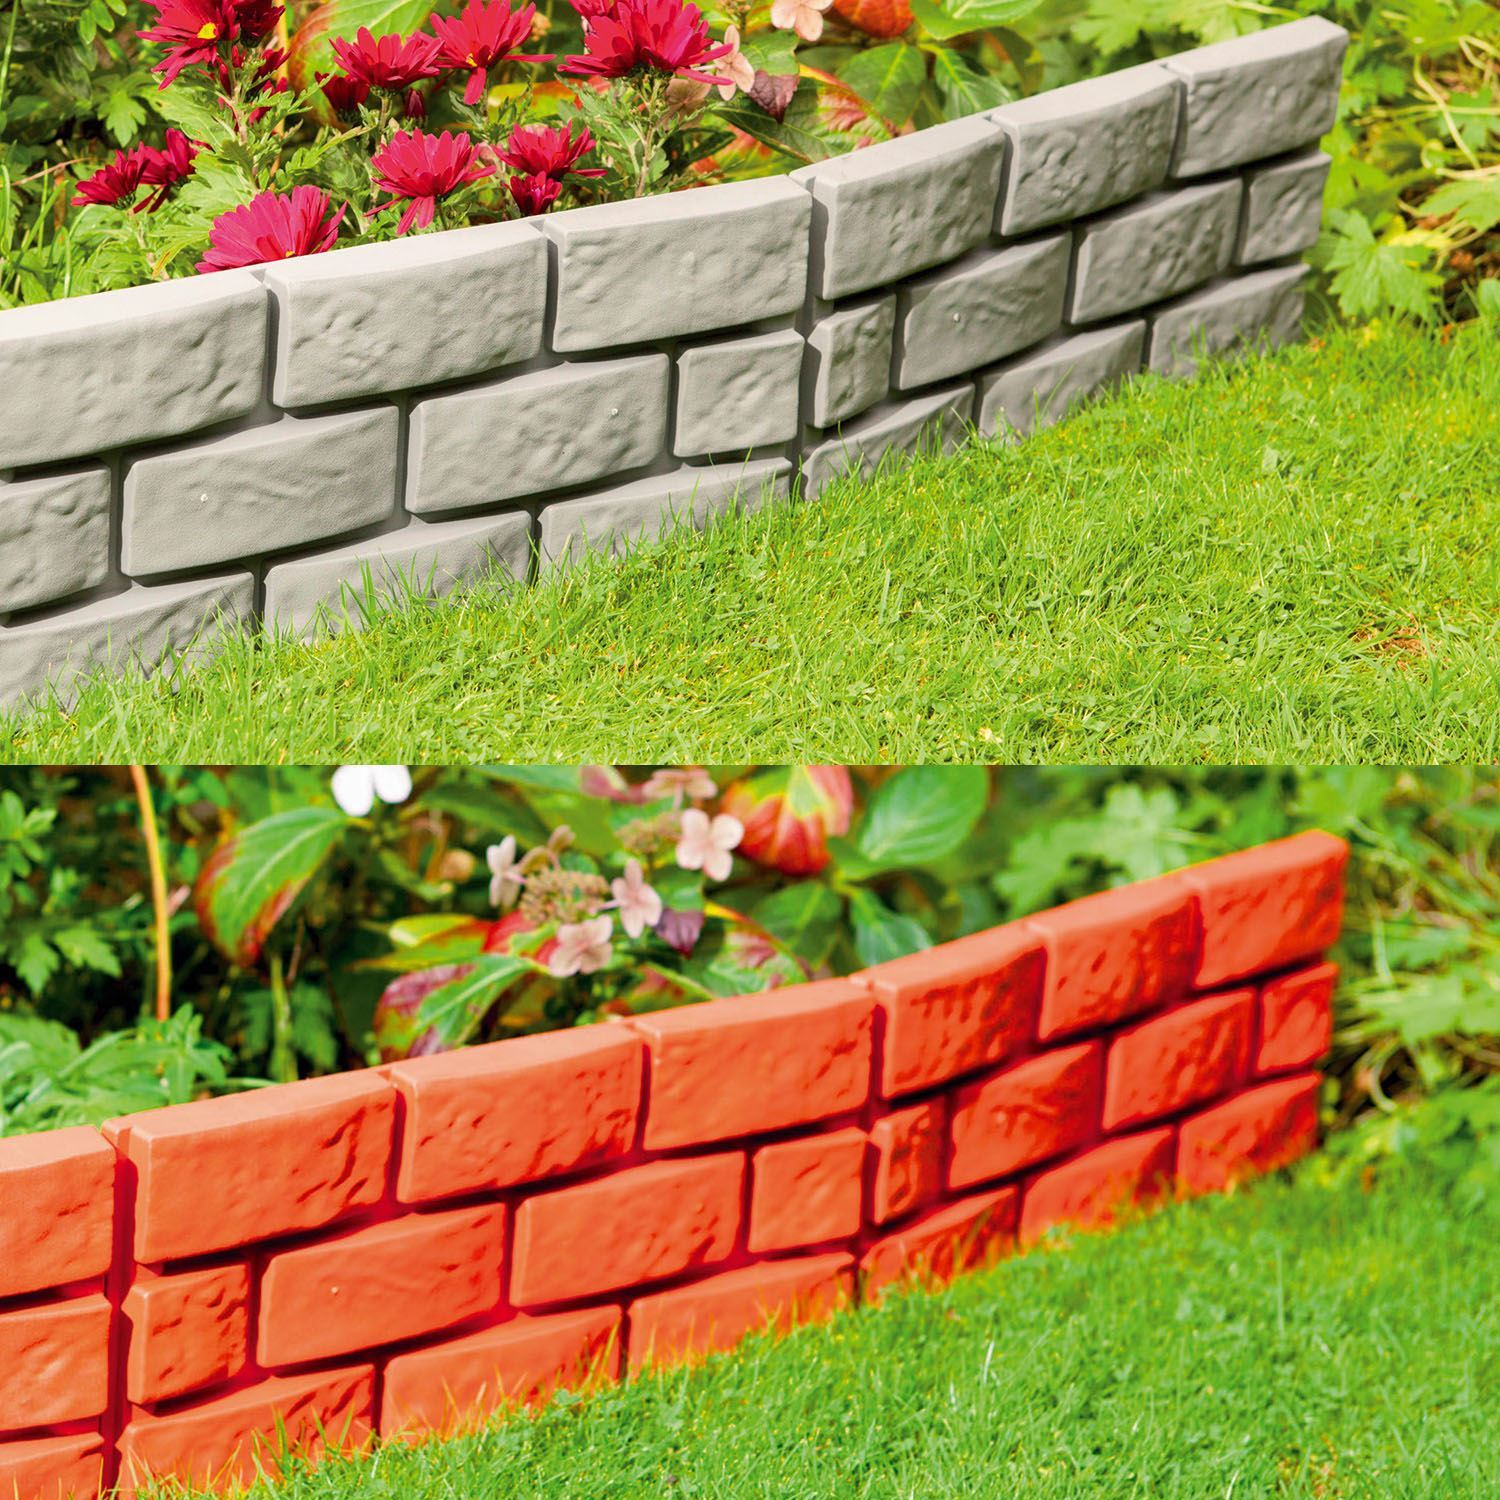 instant brick effect hammer in plastic garden lawn edging